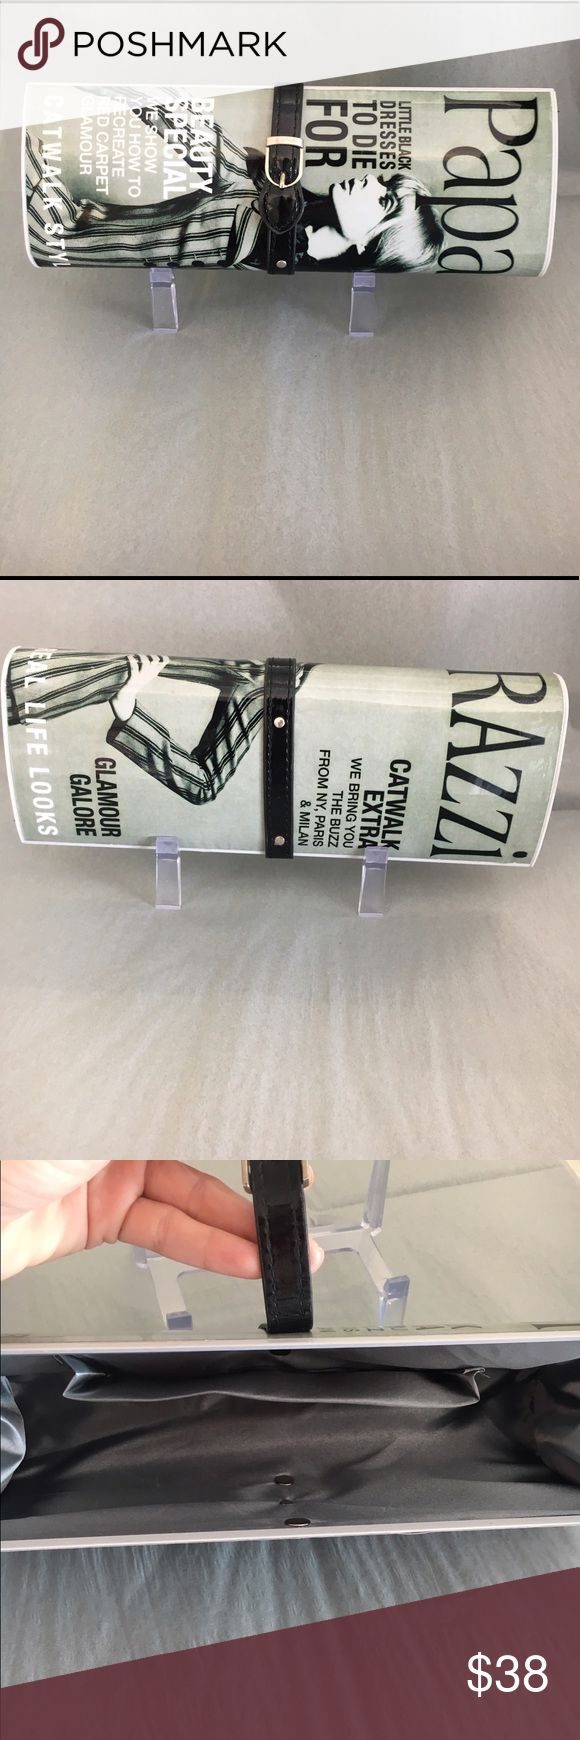 Black and white magazine clutch!!! Only worn once!! So adorable! Great condition! Makes any outfit look classy! Super fun clutch  Bags Clutches & Wristlets